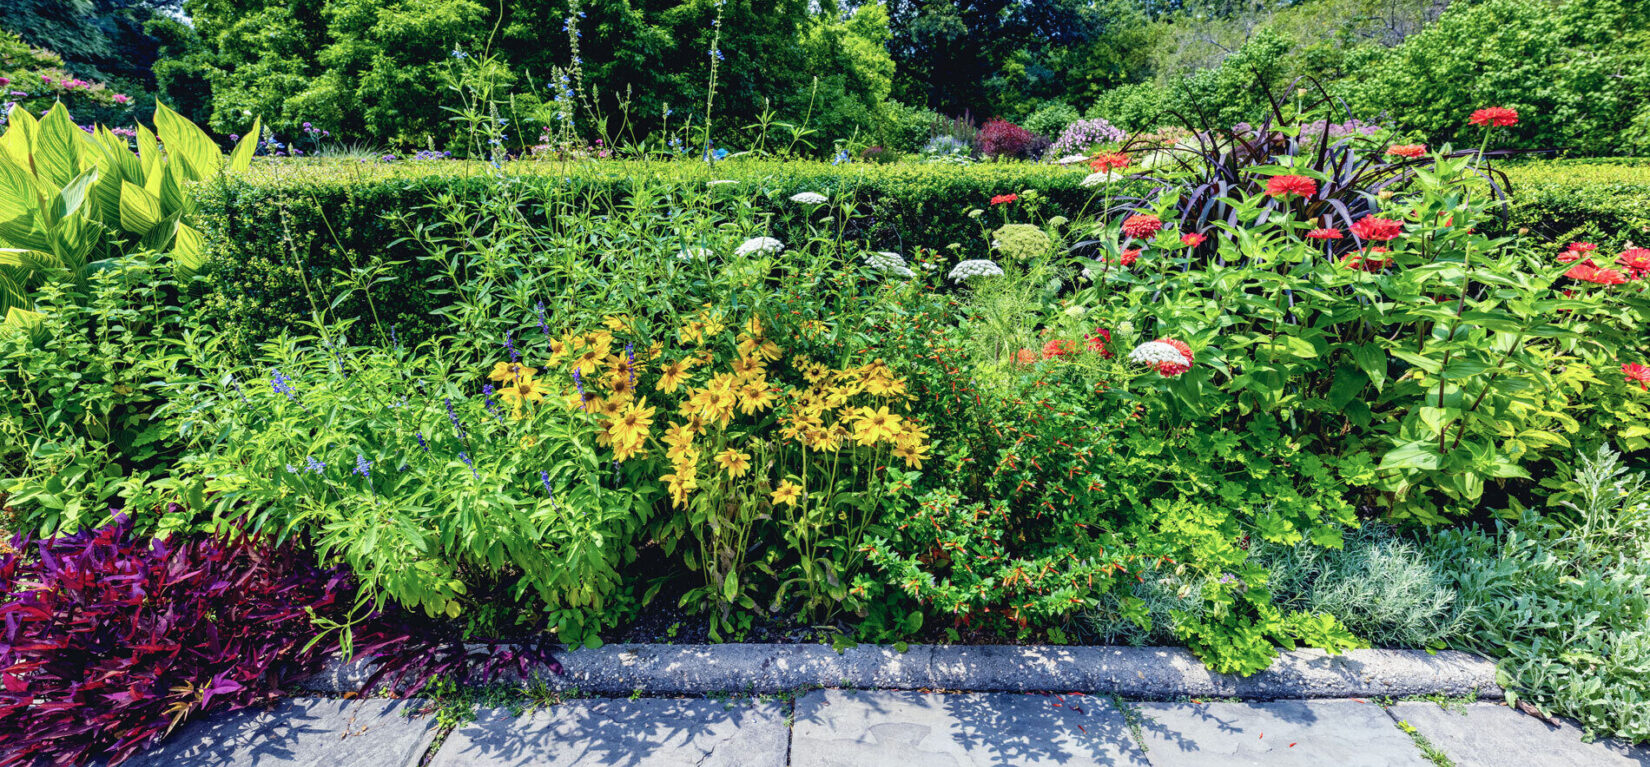 A colorful section of the garden featuring zinnias, geraniums, sage, and other flowers.